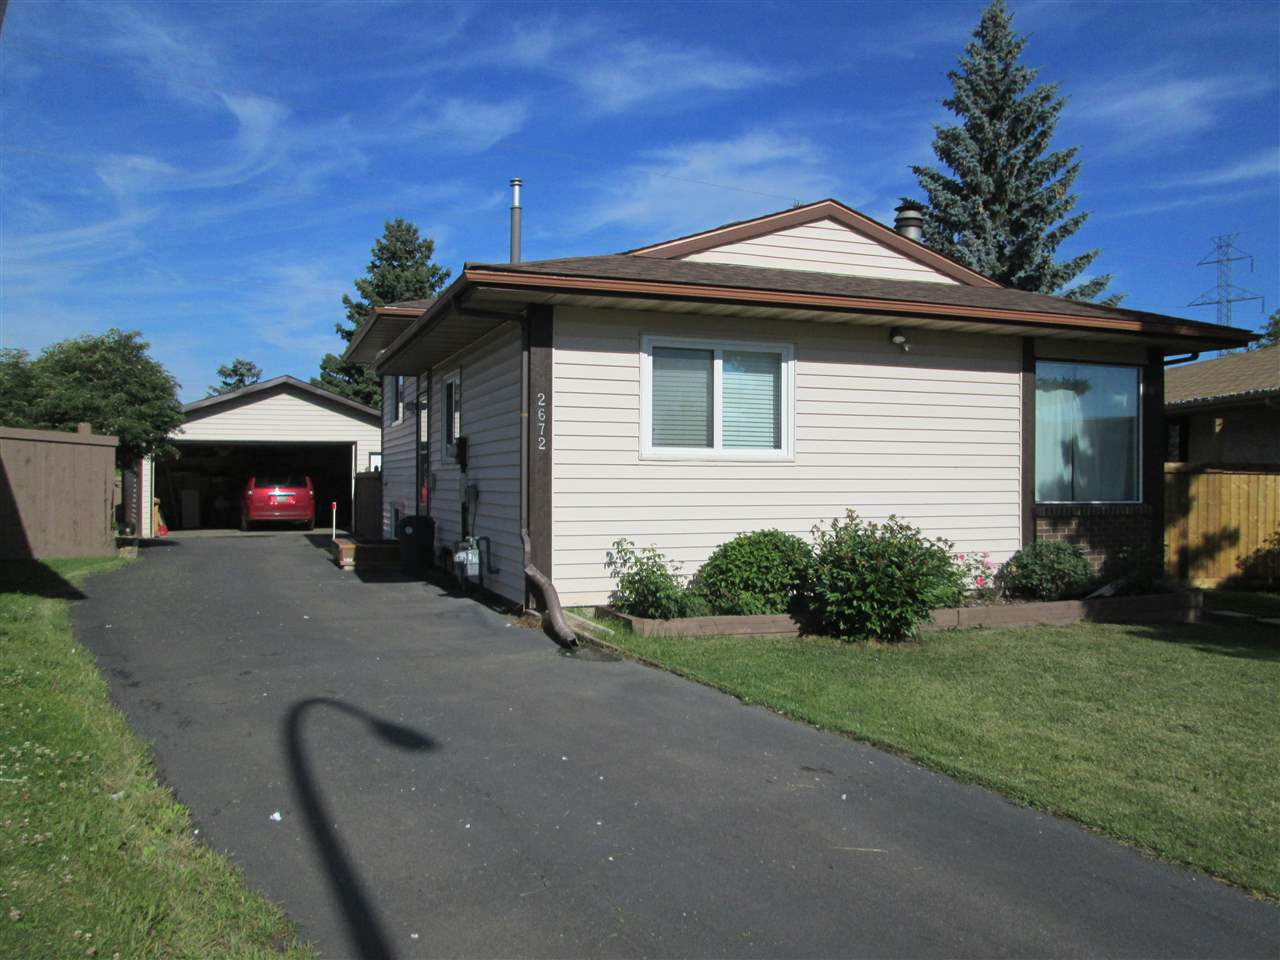 Main Photo: 2672 89 Street in Edmonton: Zone 29 House for sale : MLS® # E4075059